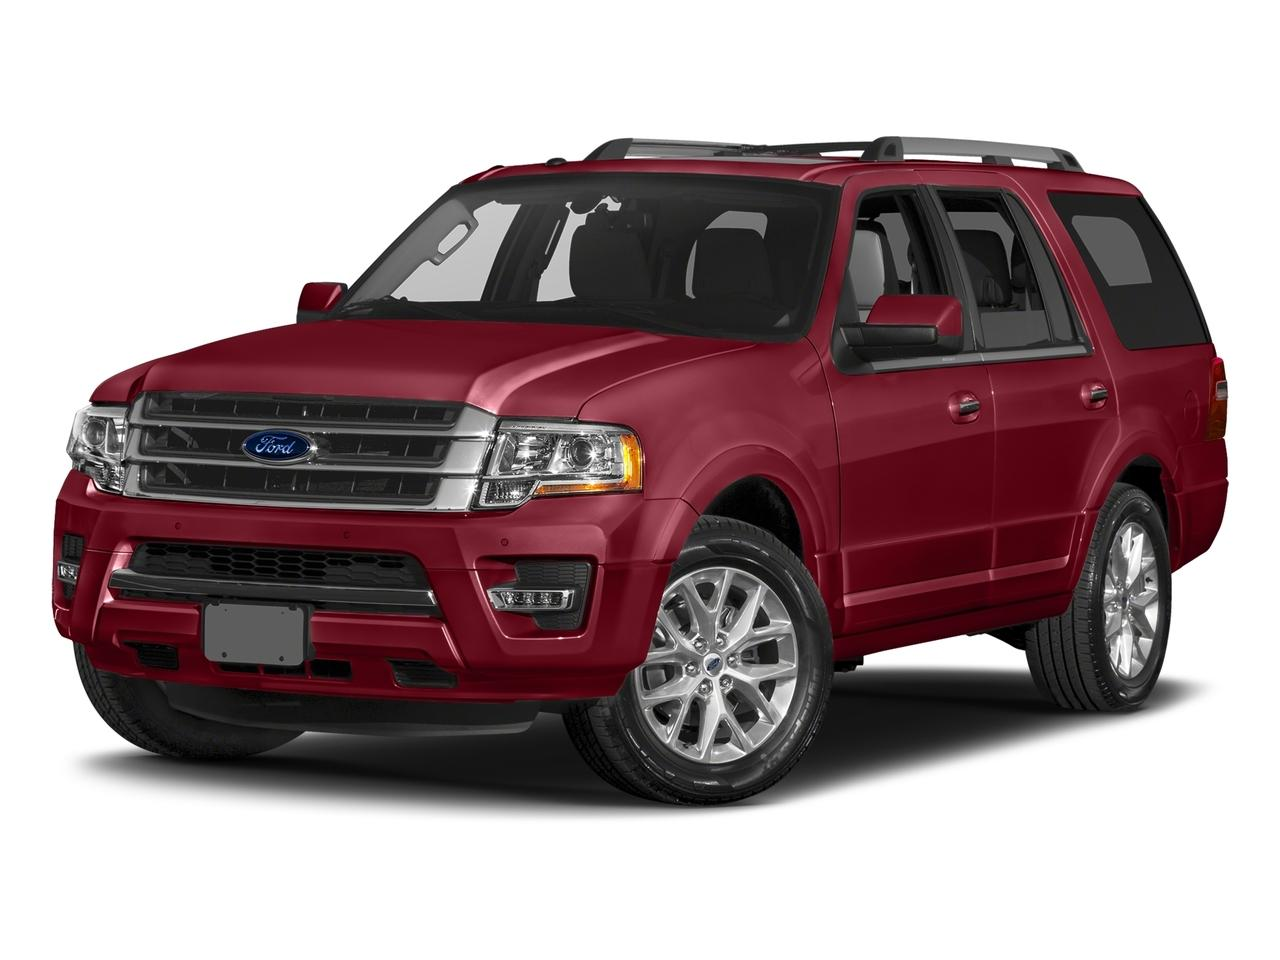 Ruby Red Metallic Tinted Clearcoat 2017 Ford Expedition Limited 4x2 Used Suv For Berwick To Houma New Iberia Drivers At A J Dohmann Chevrolet J273a